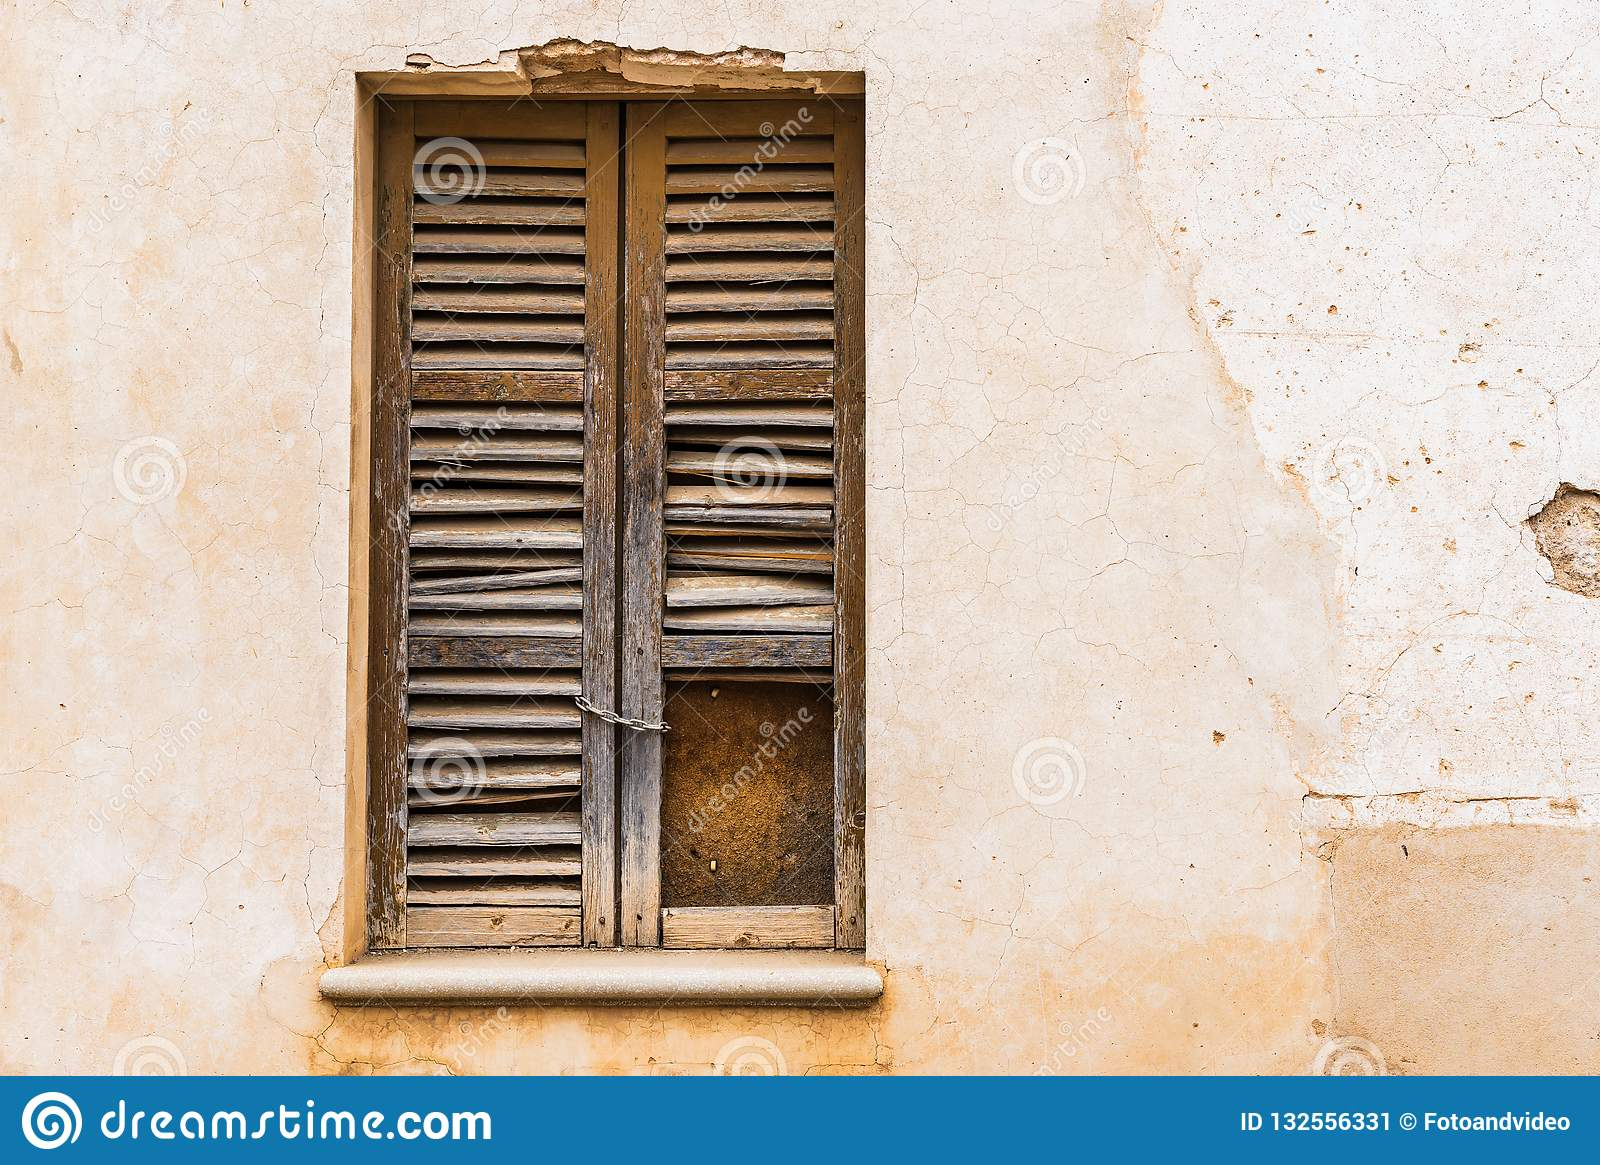 Ancient Broken Wooden Window Shutter With Rustic Stucco Wall